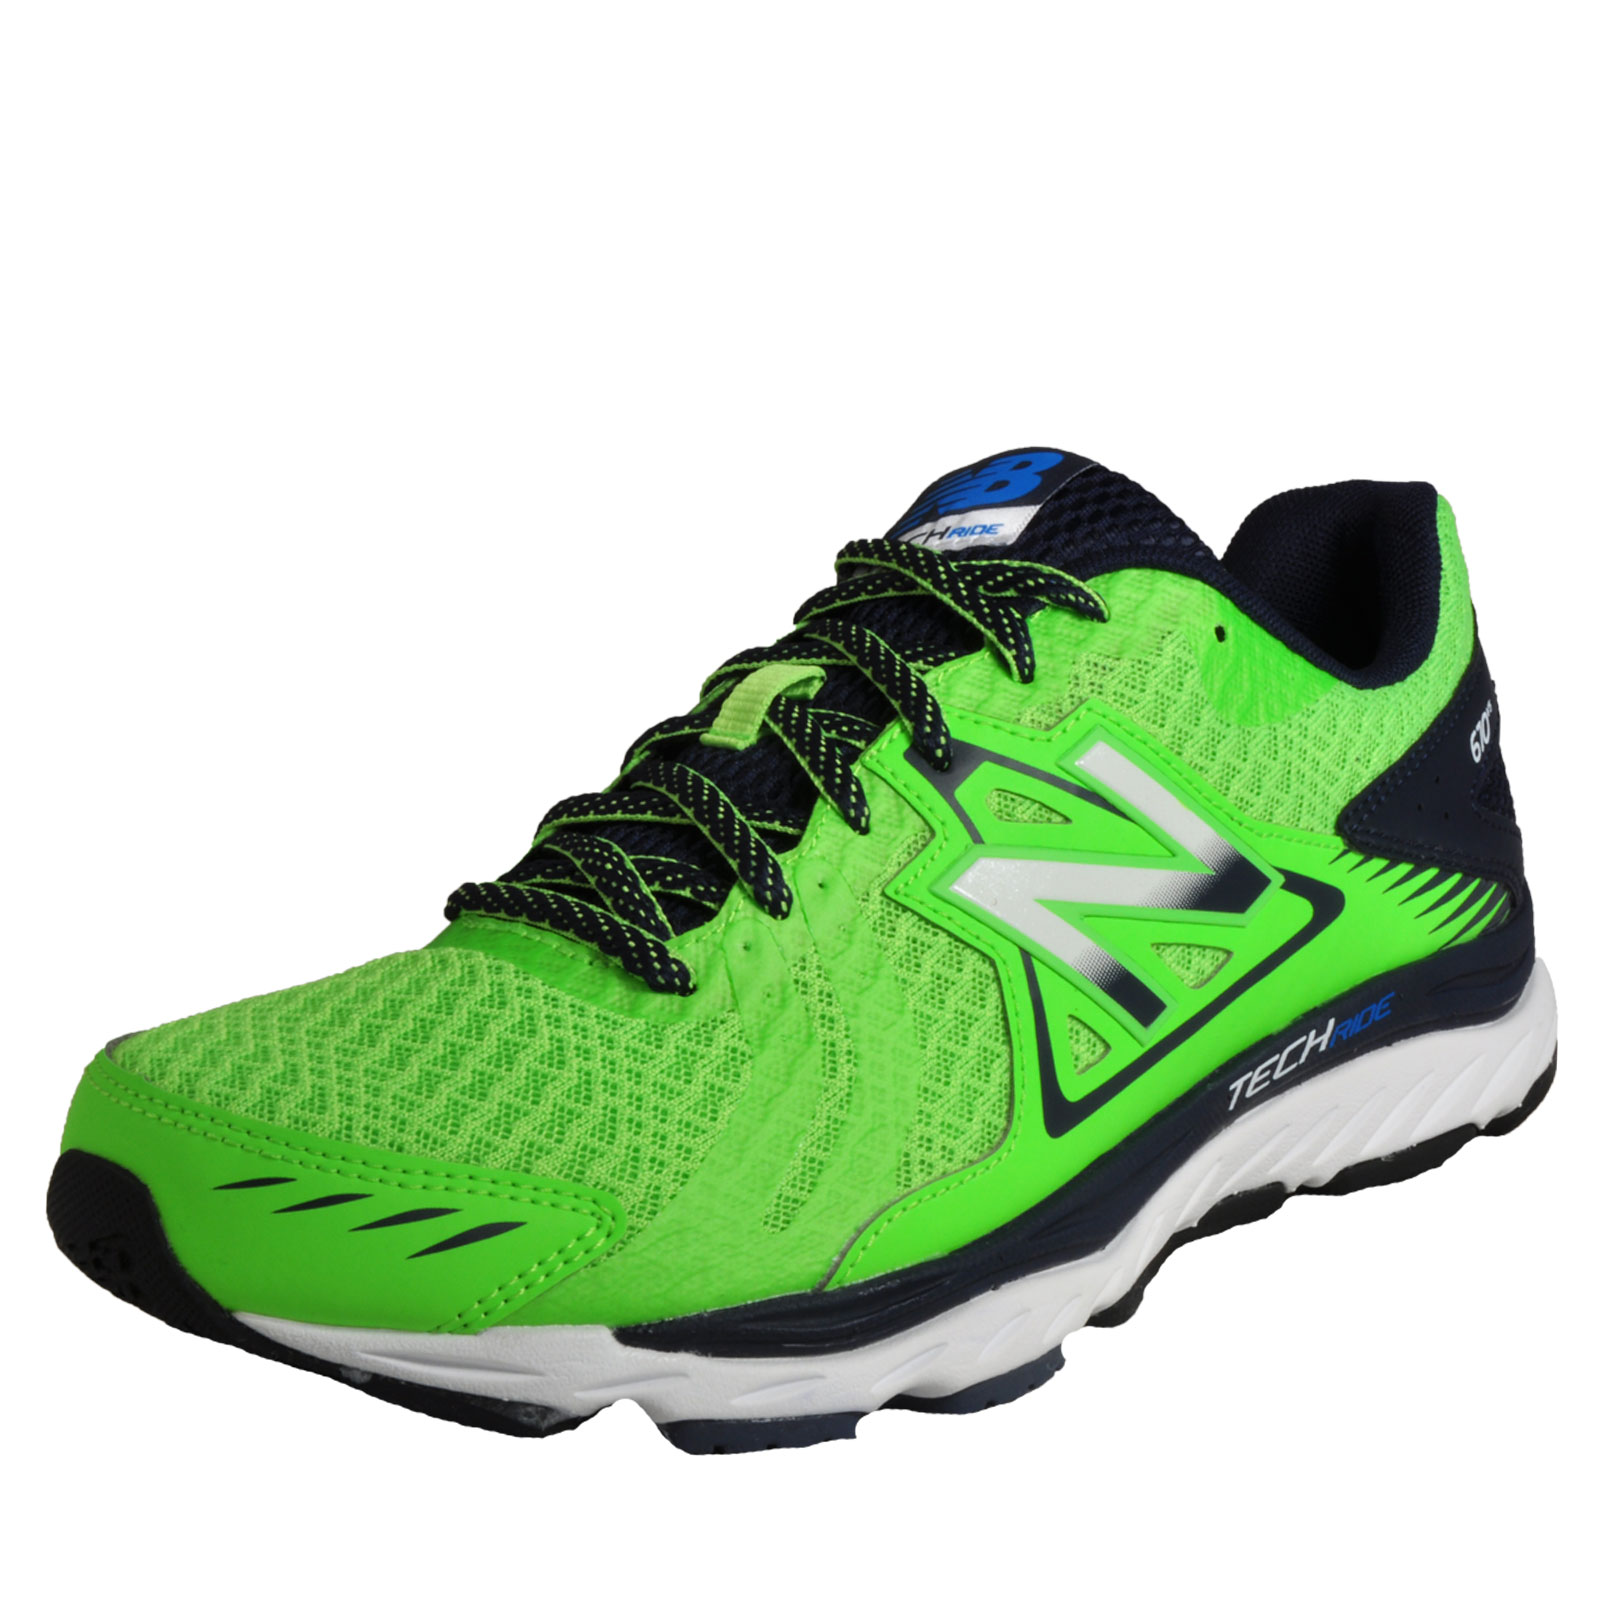 d7265990170c Details about New Balance 670 V5 Men s Running Shoes Gym Fitness Trainers  Green